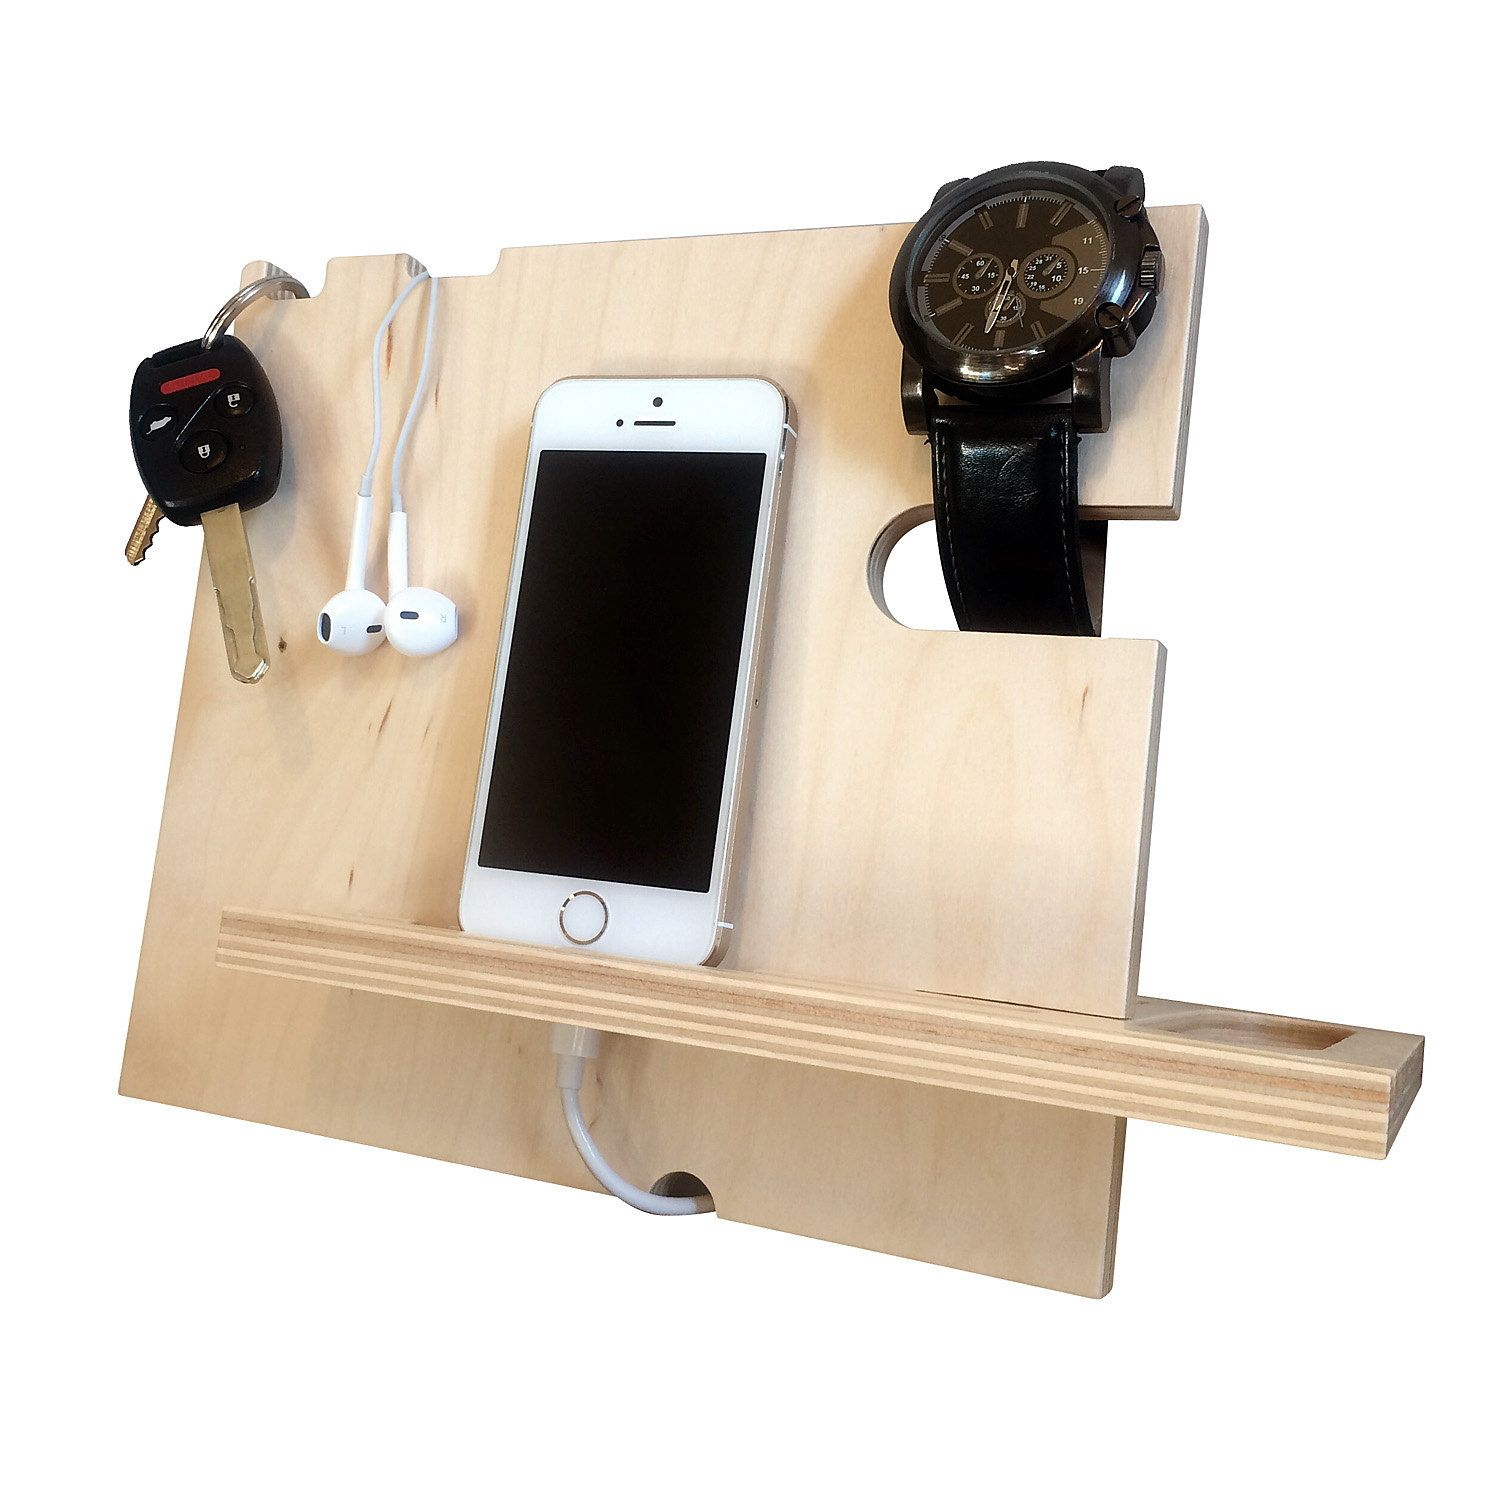 Christmas Gift Techie Ideas - Iphone Dock It Charging Stand FREE SHIPPING